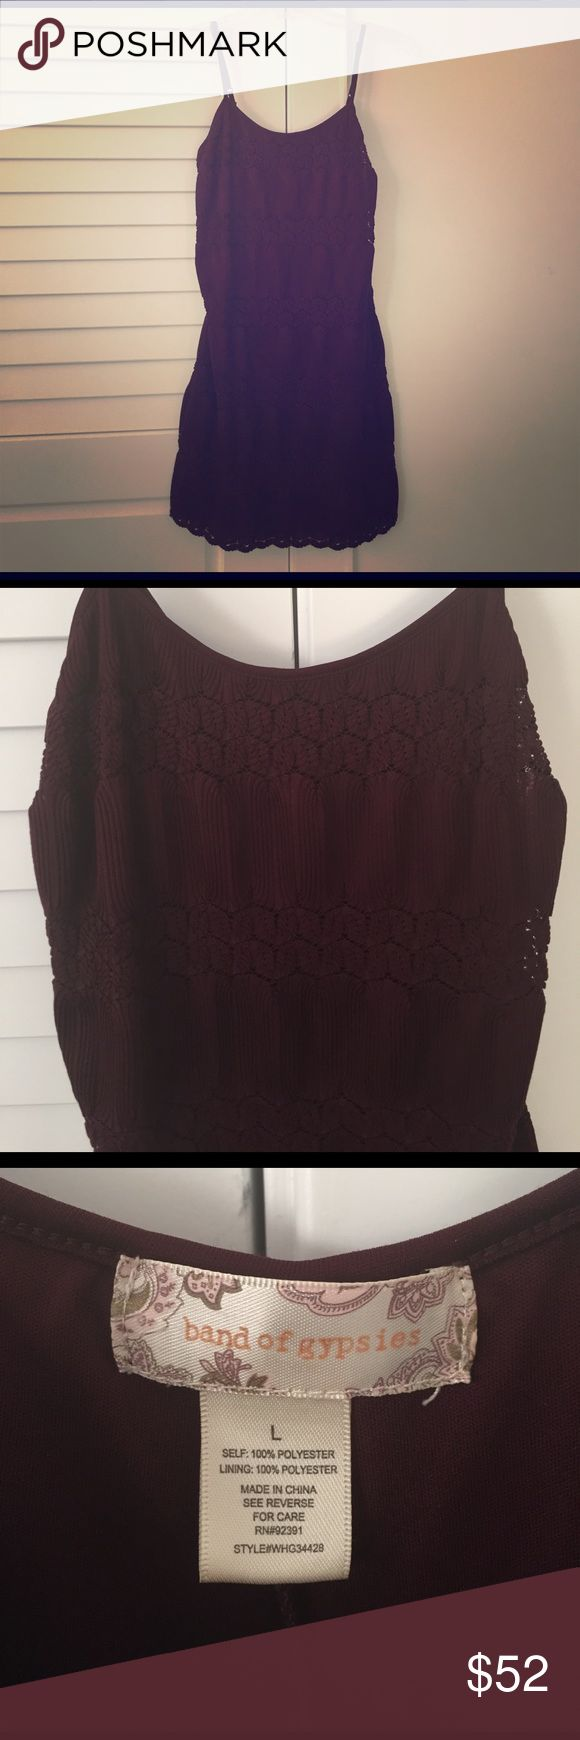 Band of Gypsies Knitted Cami Dress - Size L Band of Gypsies Knitted Cami Dress. Size large. As sold at ASOS. Worn a few times, great condition! Color is called 'wine' which is a dark / wine red. Soft fabric and comfortable fit. The perfect dress to pair with some Tory Butch sandals for the summer! Description: Casual dress by Band of Gypsies - Textured fabric - Square neck - Adjustable cami straps - Ribbed panels - Scalloped hem detail - Slim fit - cut close to the body - Hand wash - 100%…